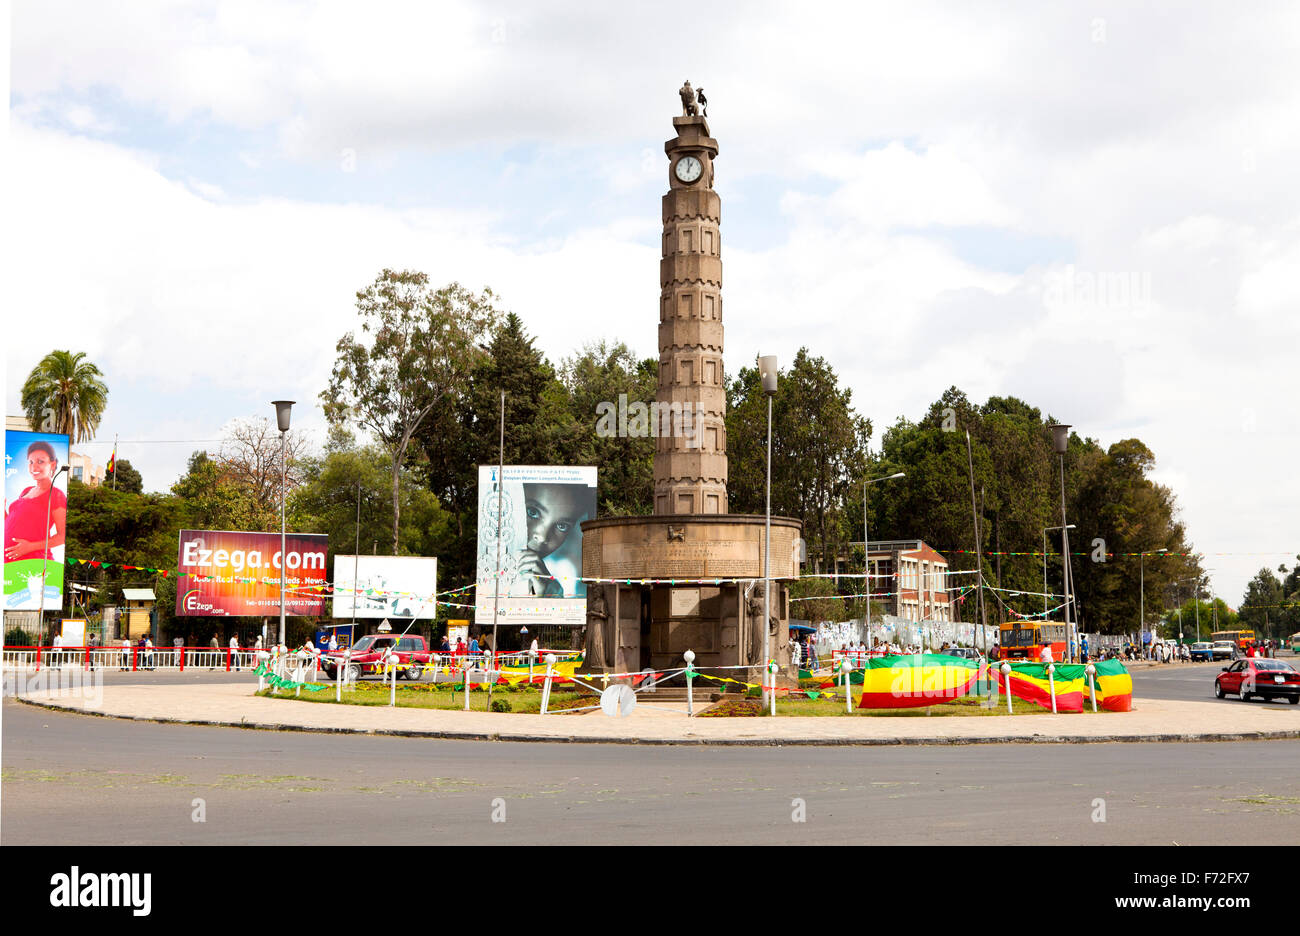 Arat Kilo Addis Ababa Ethiopia Stock Photos & Arat Kilo Addis Ababa